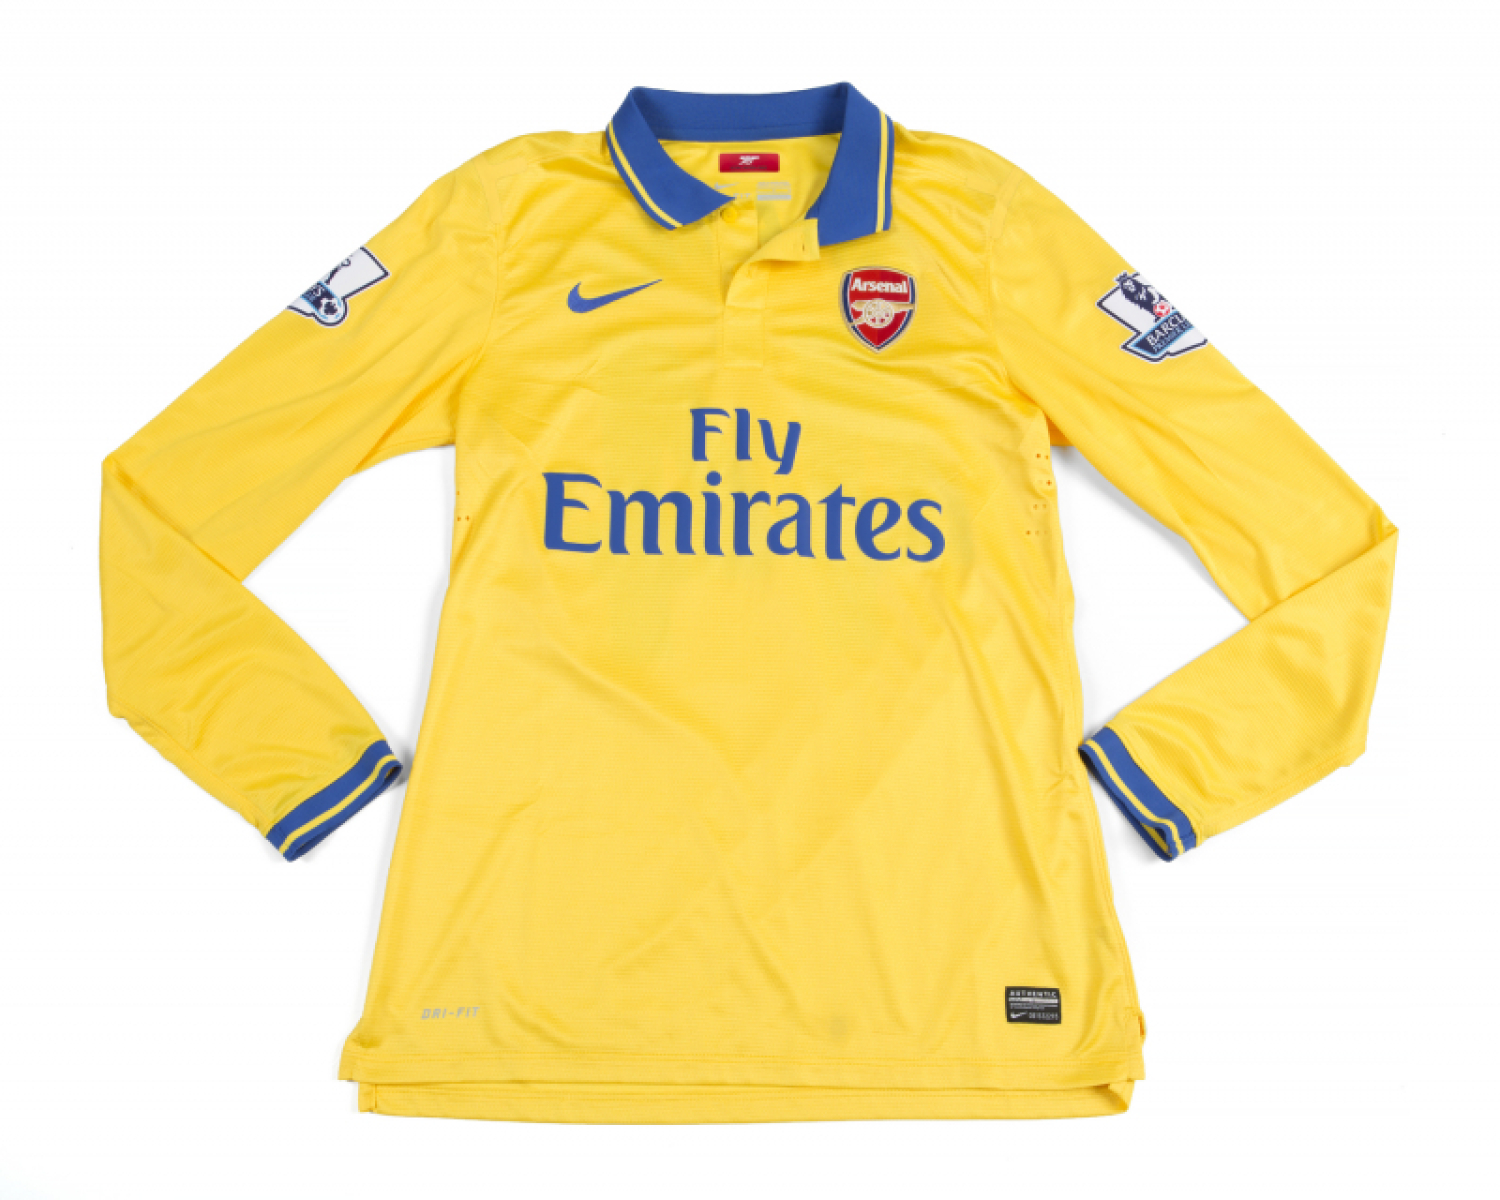 cheap for discount c06b2 82fcf SERGE GNABRY 2013 ARSENAL FC TEAM ISSUED JERSEY - Price ...